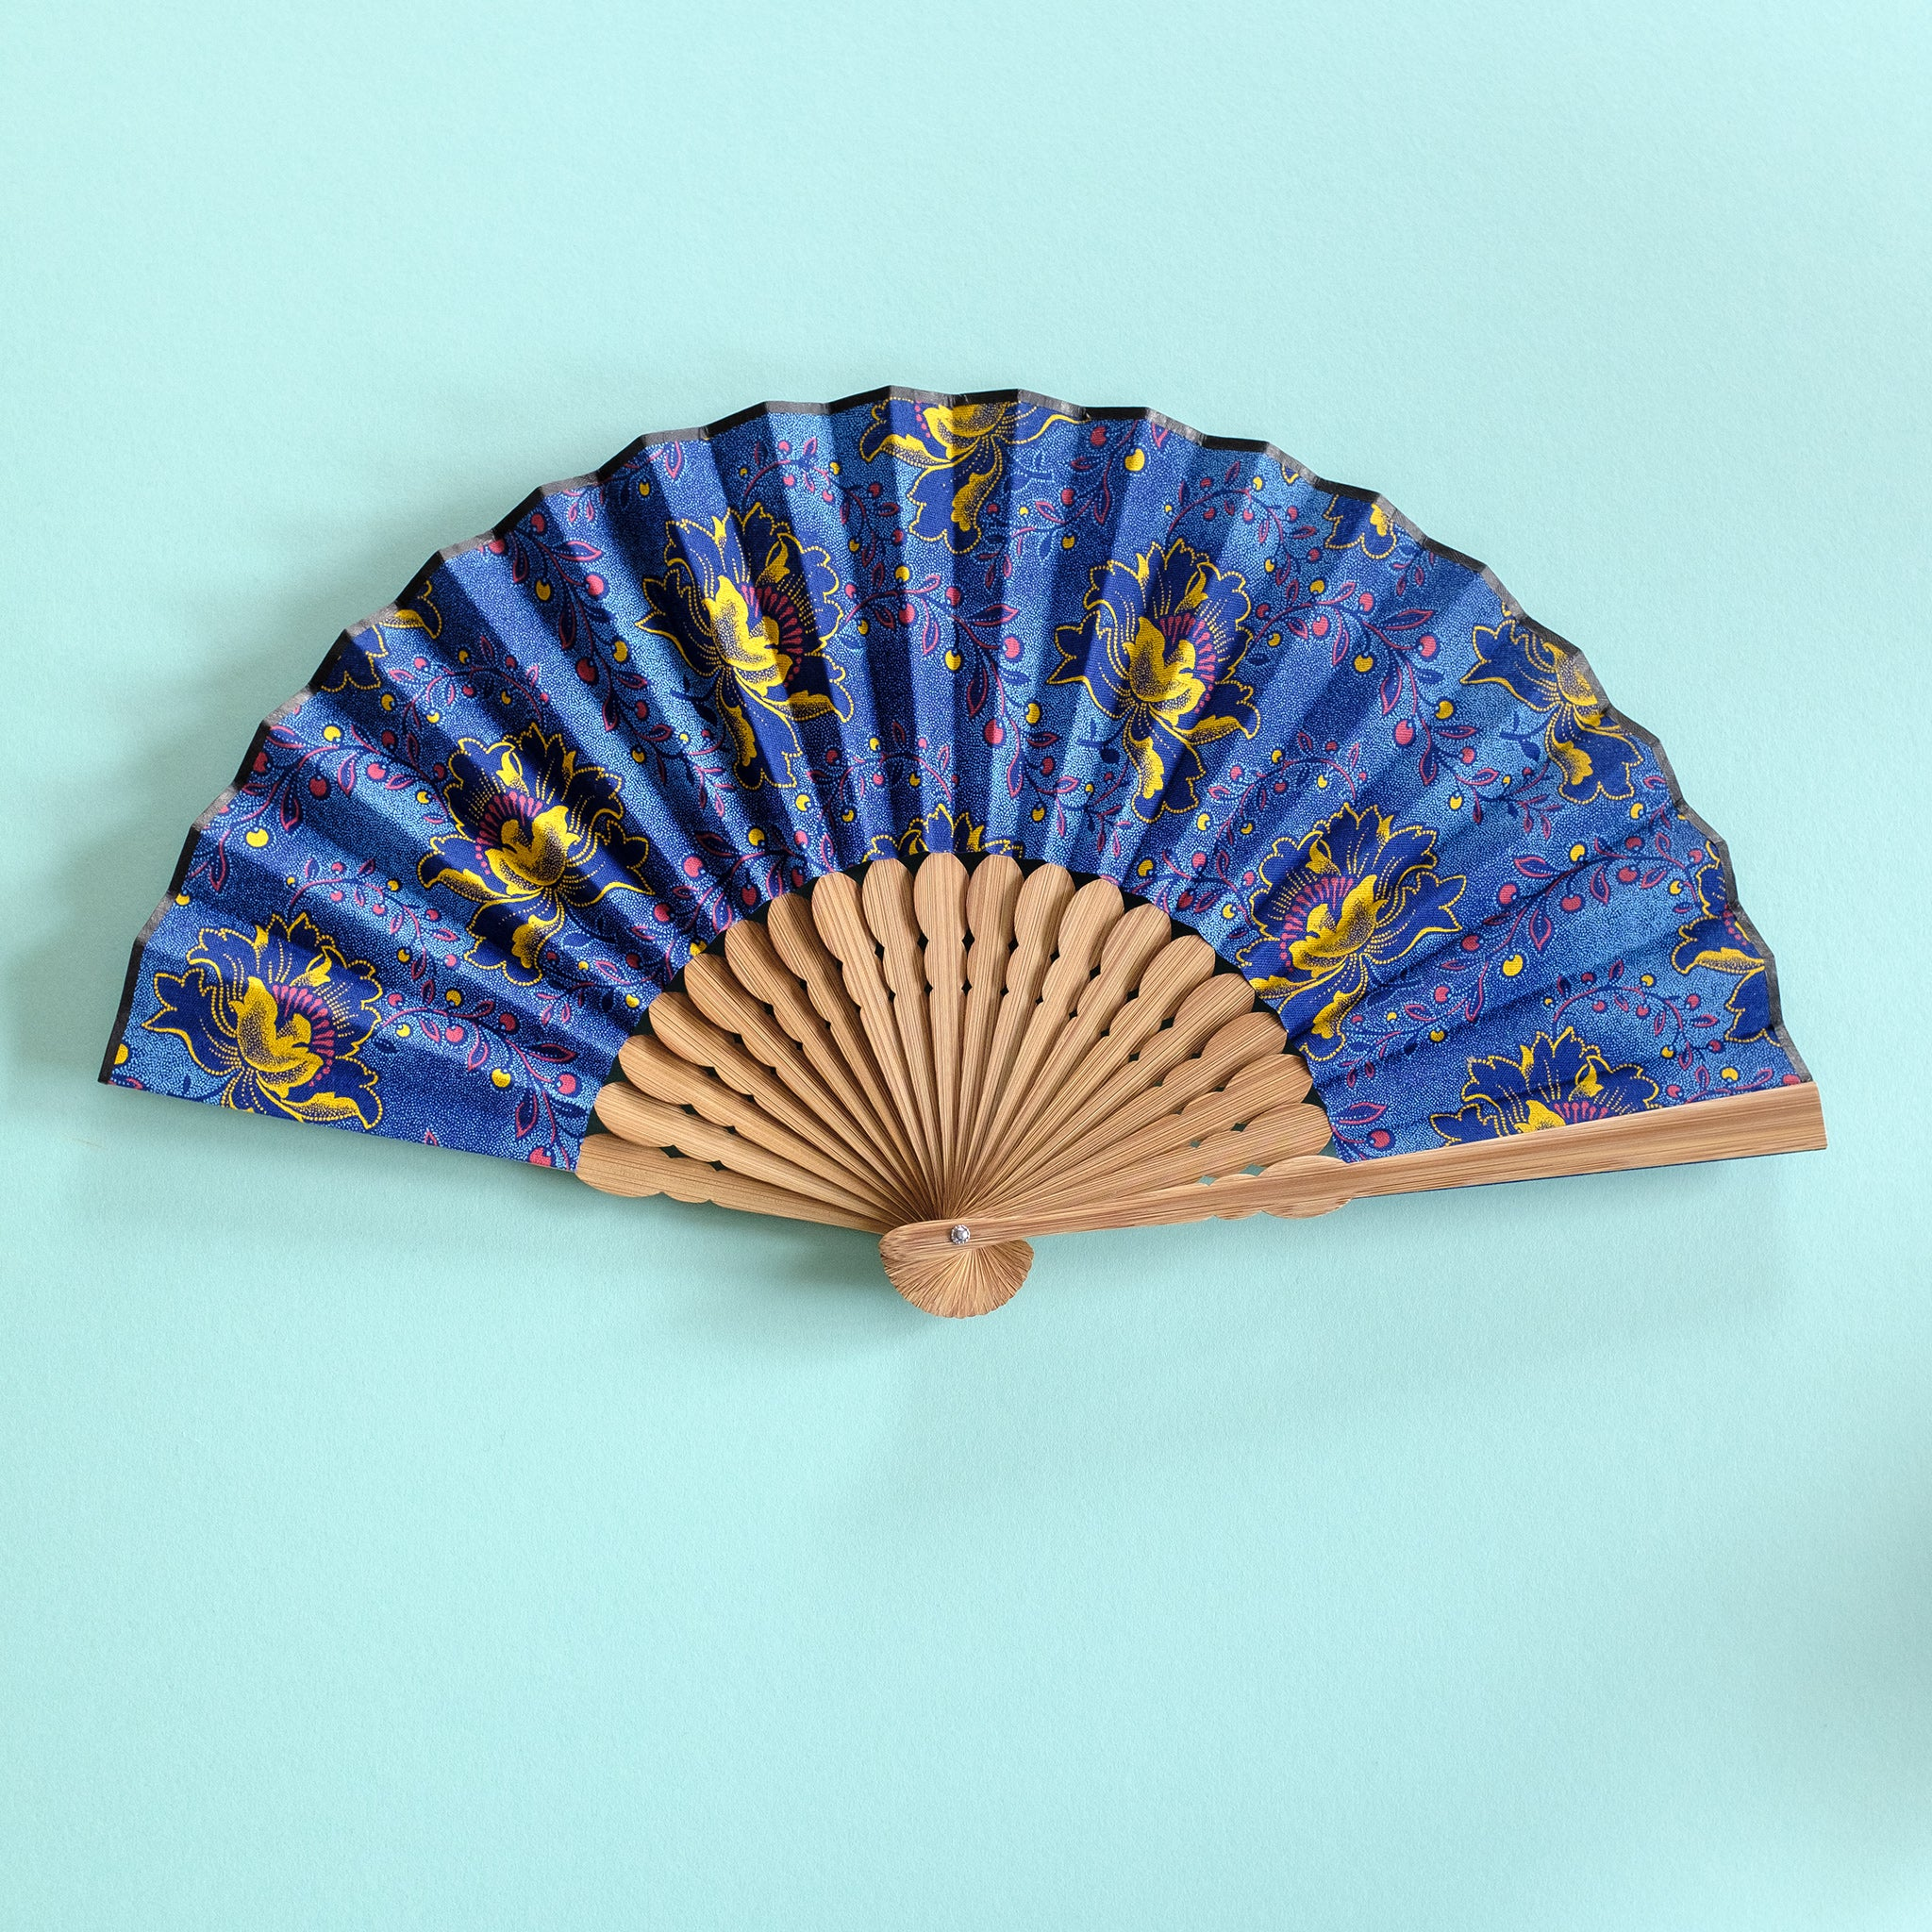 Four Seasons Shweshwe x Japanese Fan